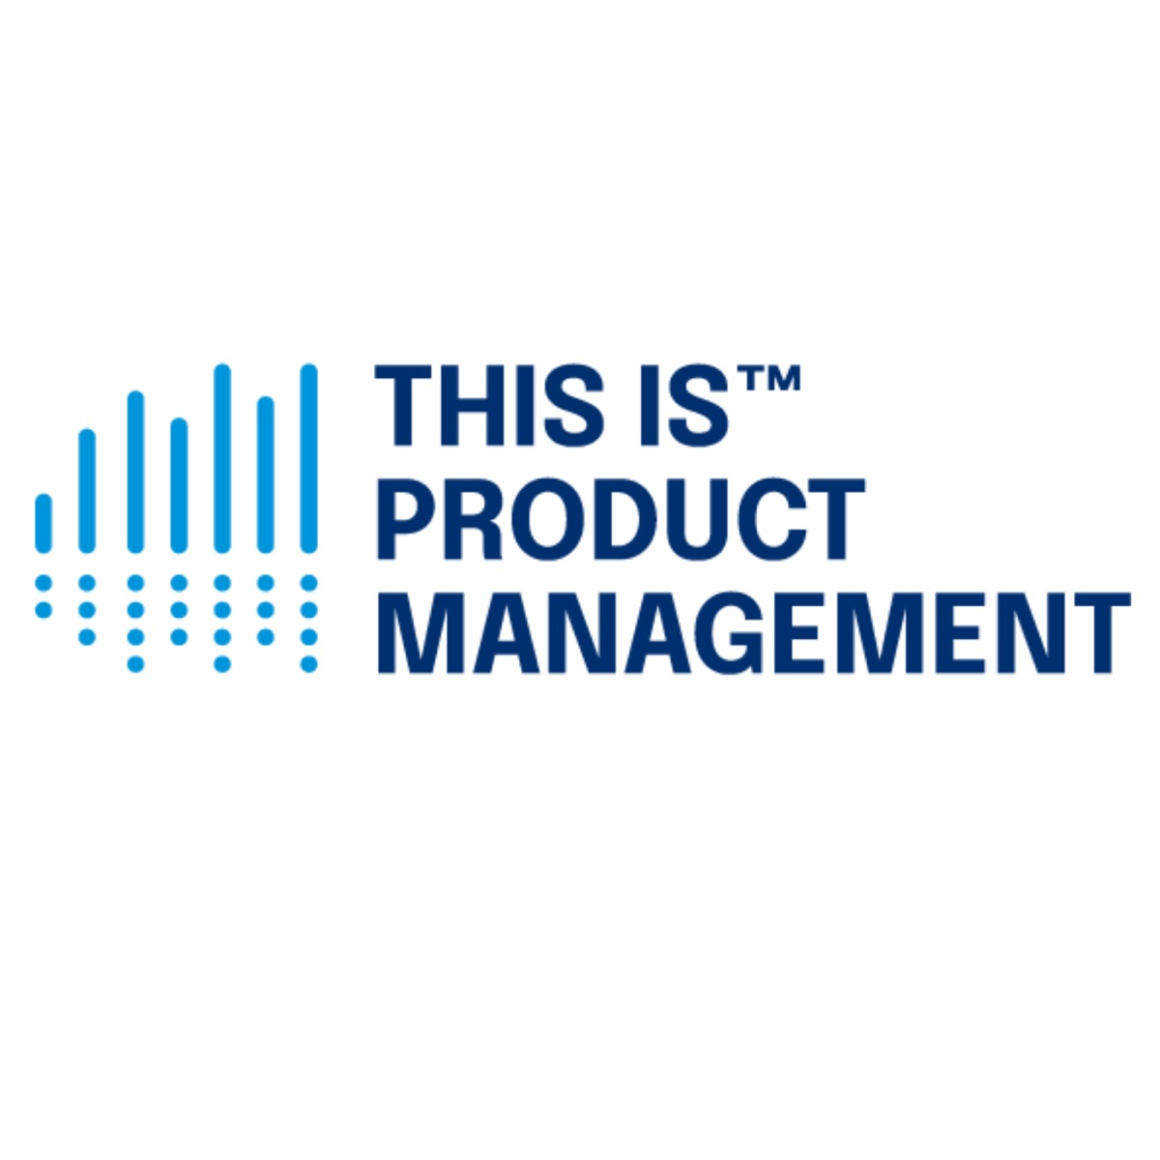 product design podcasts this is product management